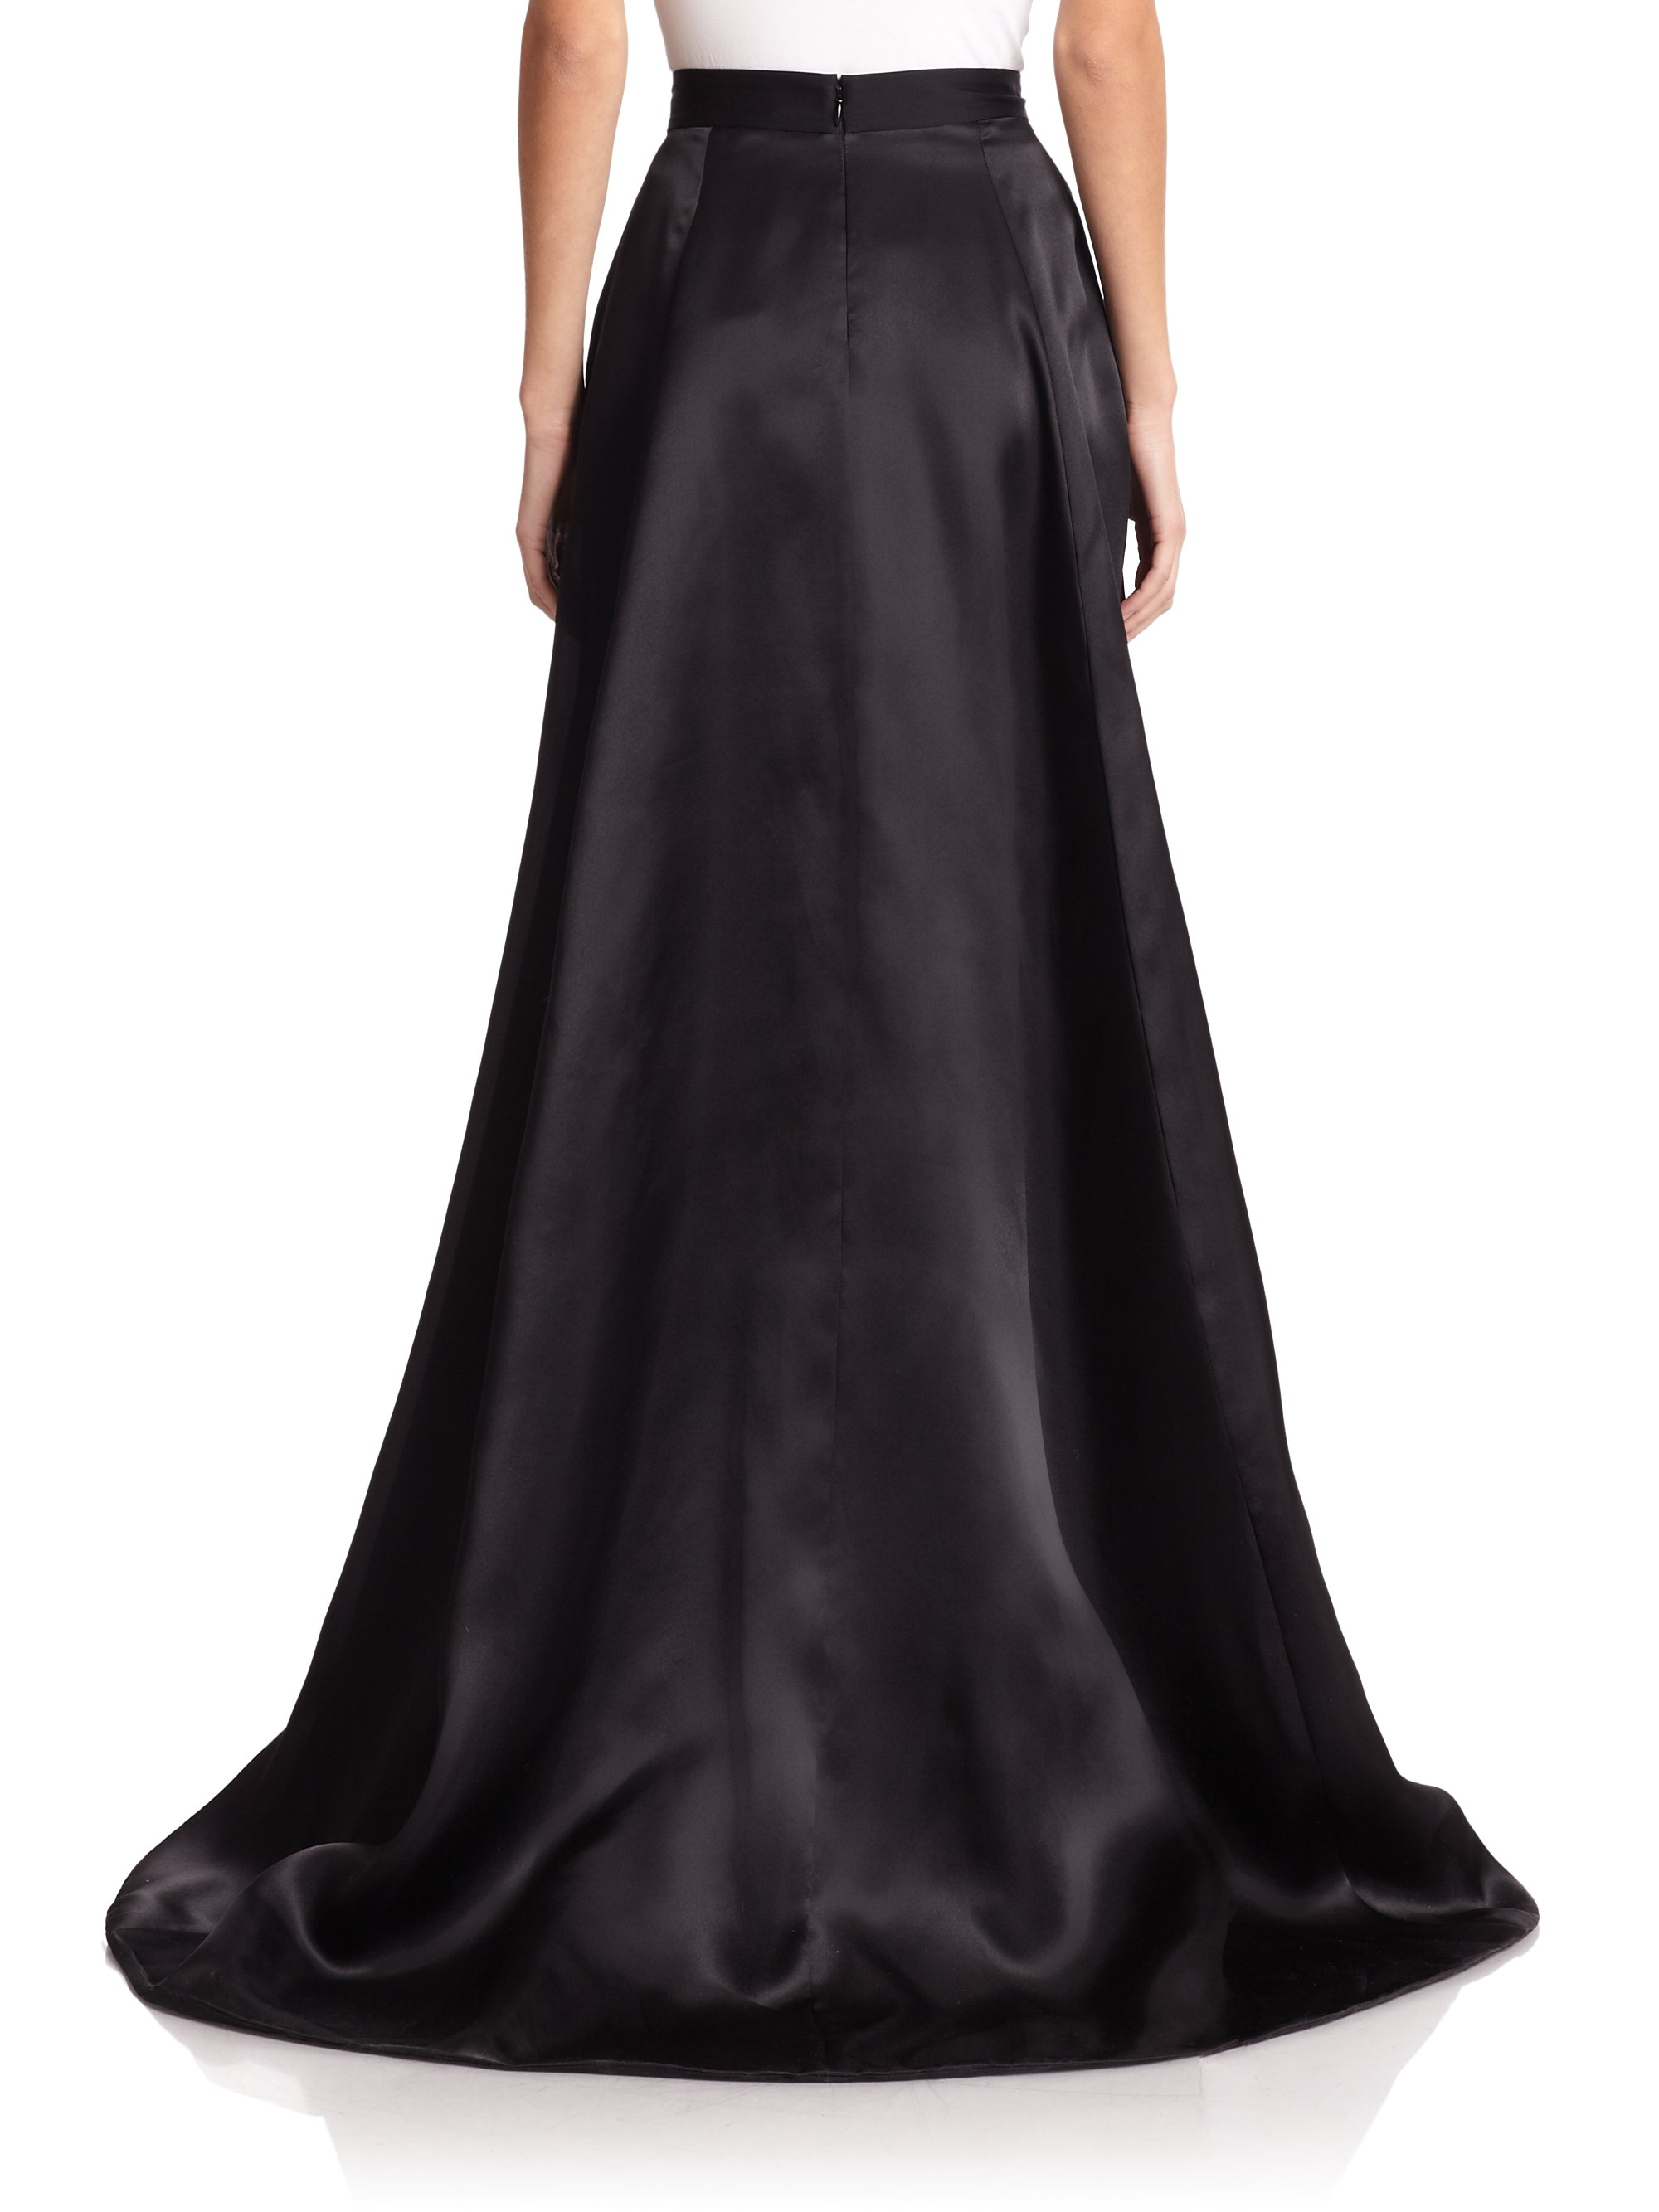 Lyst - St. John Silk Satin Ball Gown Skirt in Black